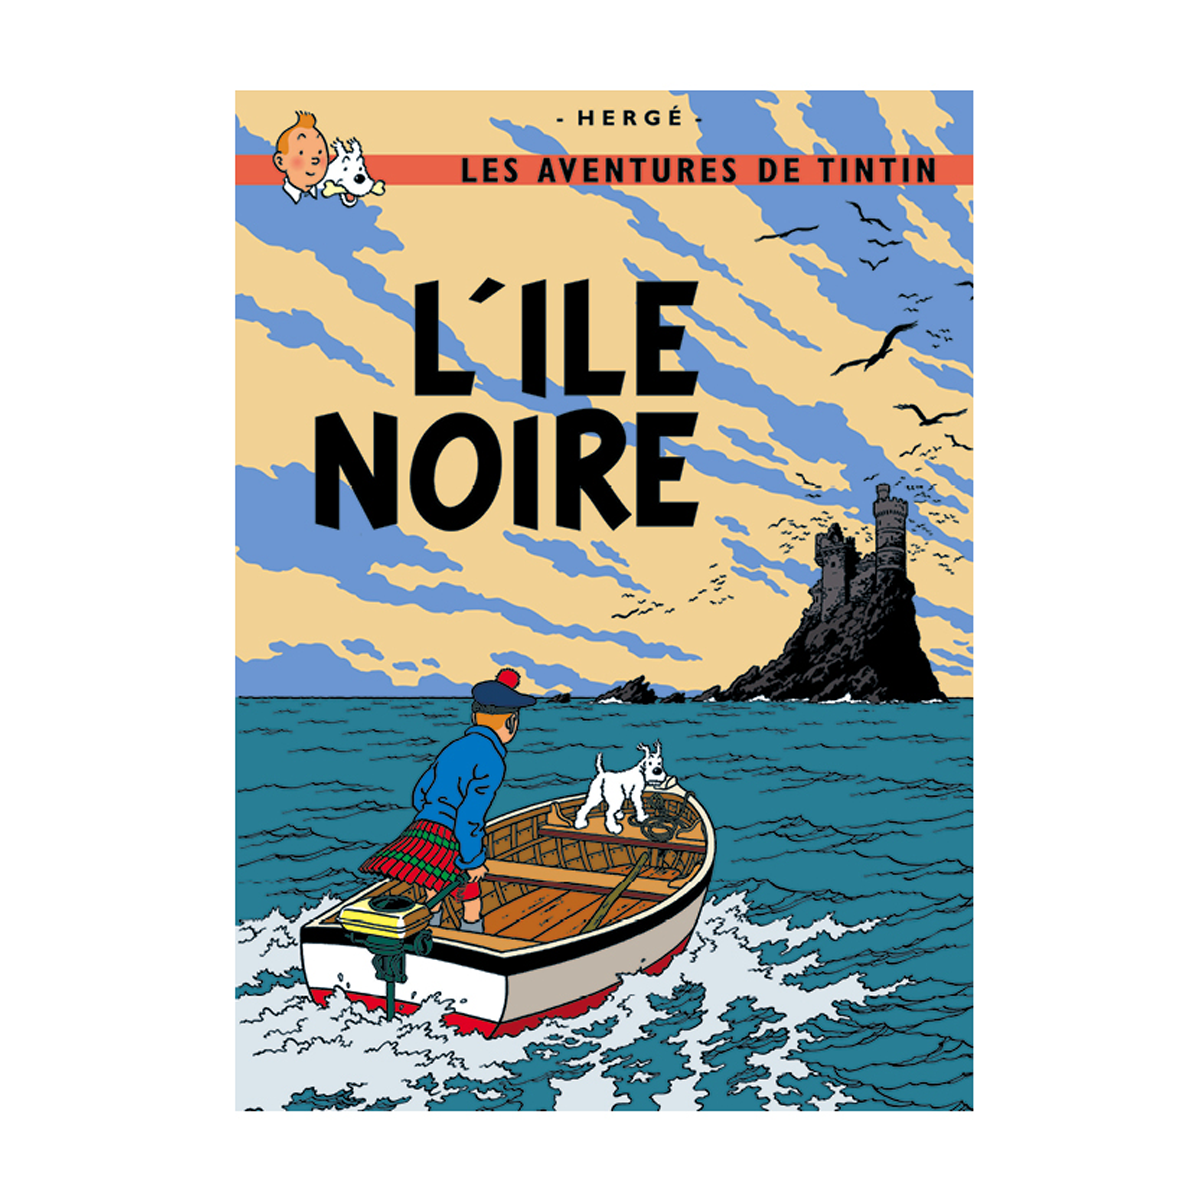 Tintin L'Ile Noire Poster: This vintage Tintin poster was originally designed by Herge. This poster is of the book cover featuring the original French text.